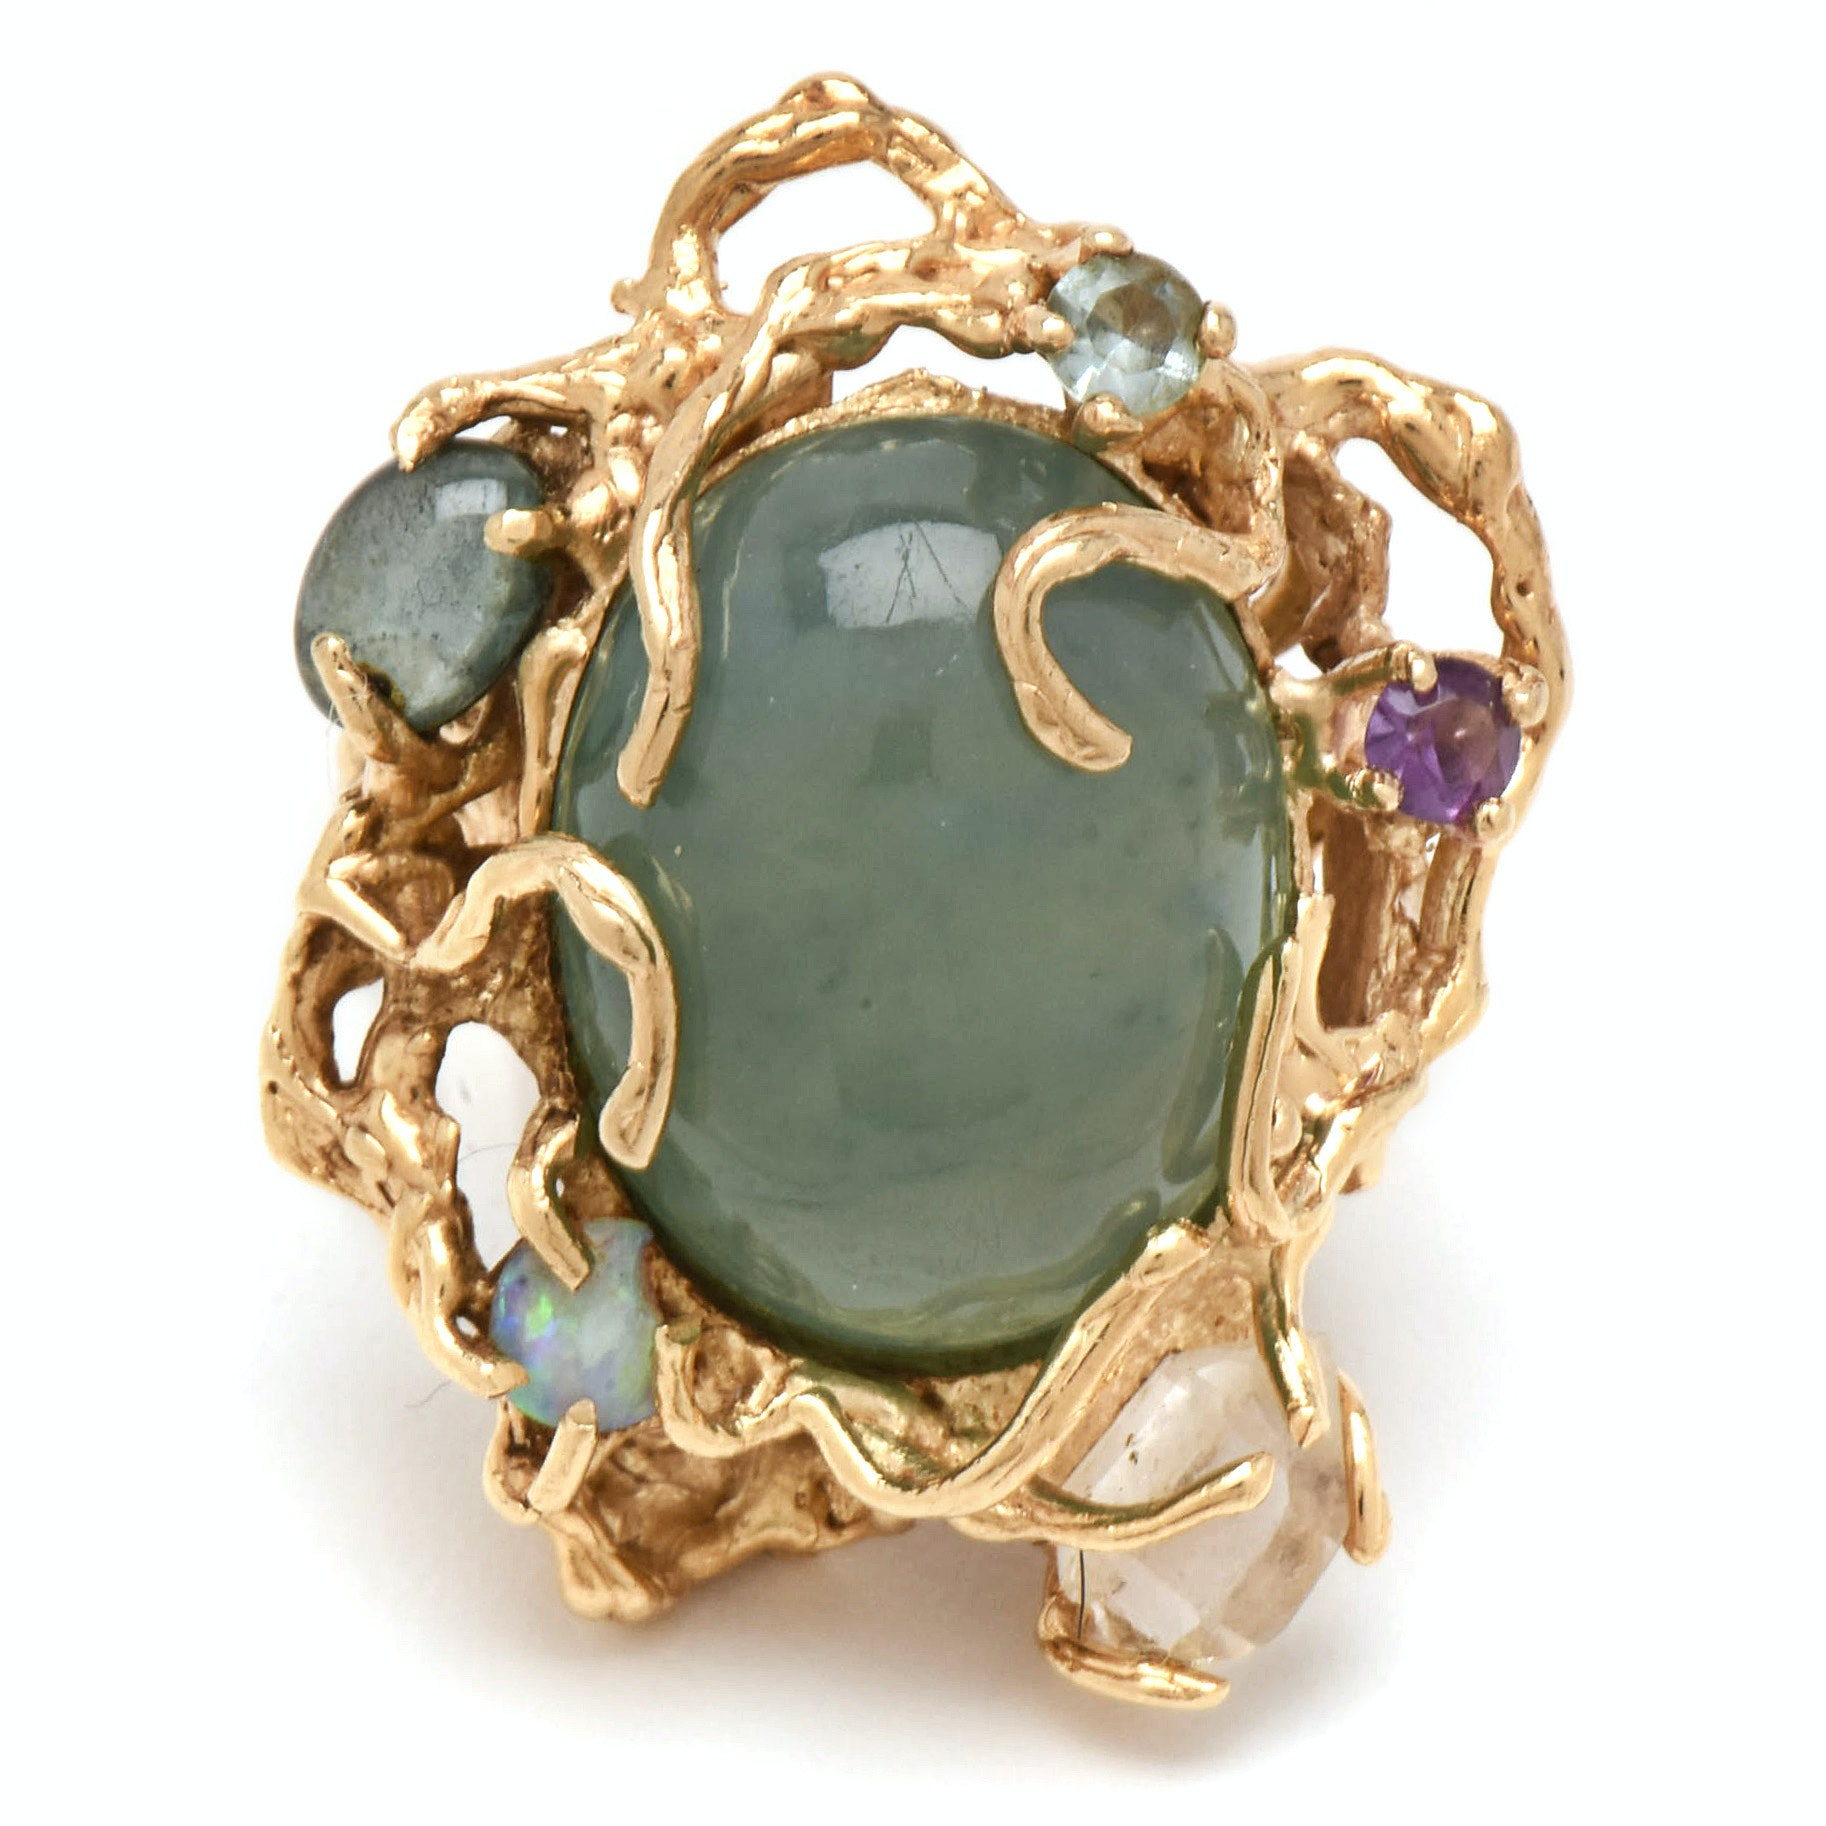 14K Yellow Gold 37.87 CT Unenhanced Jadeite and Gemstone Statement Ring